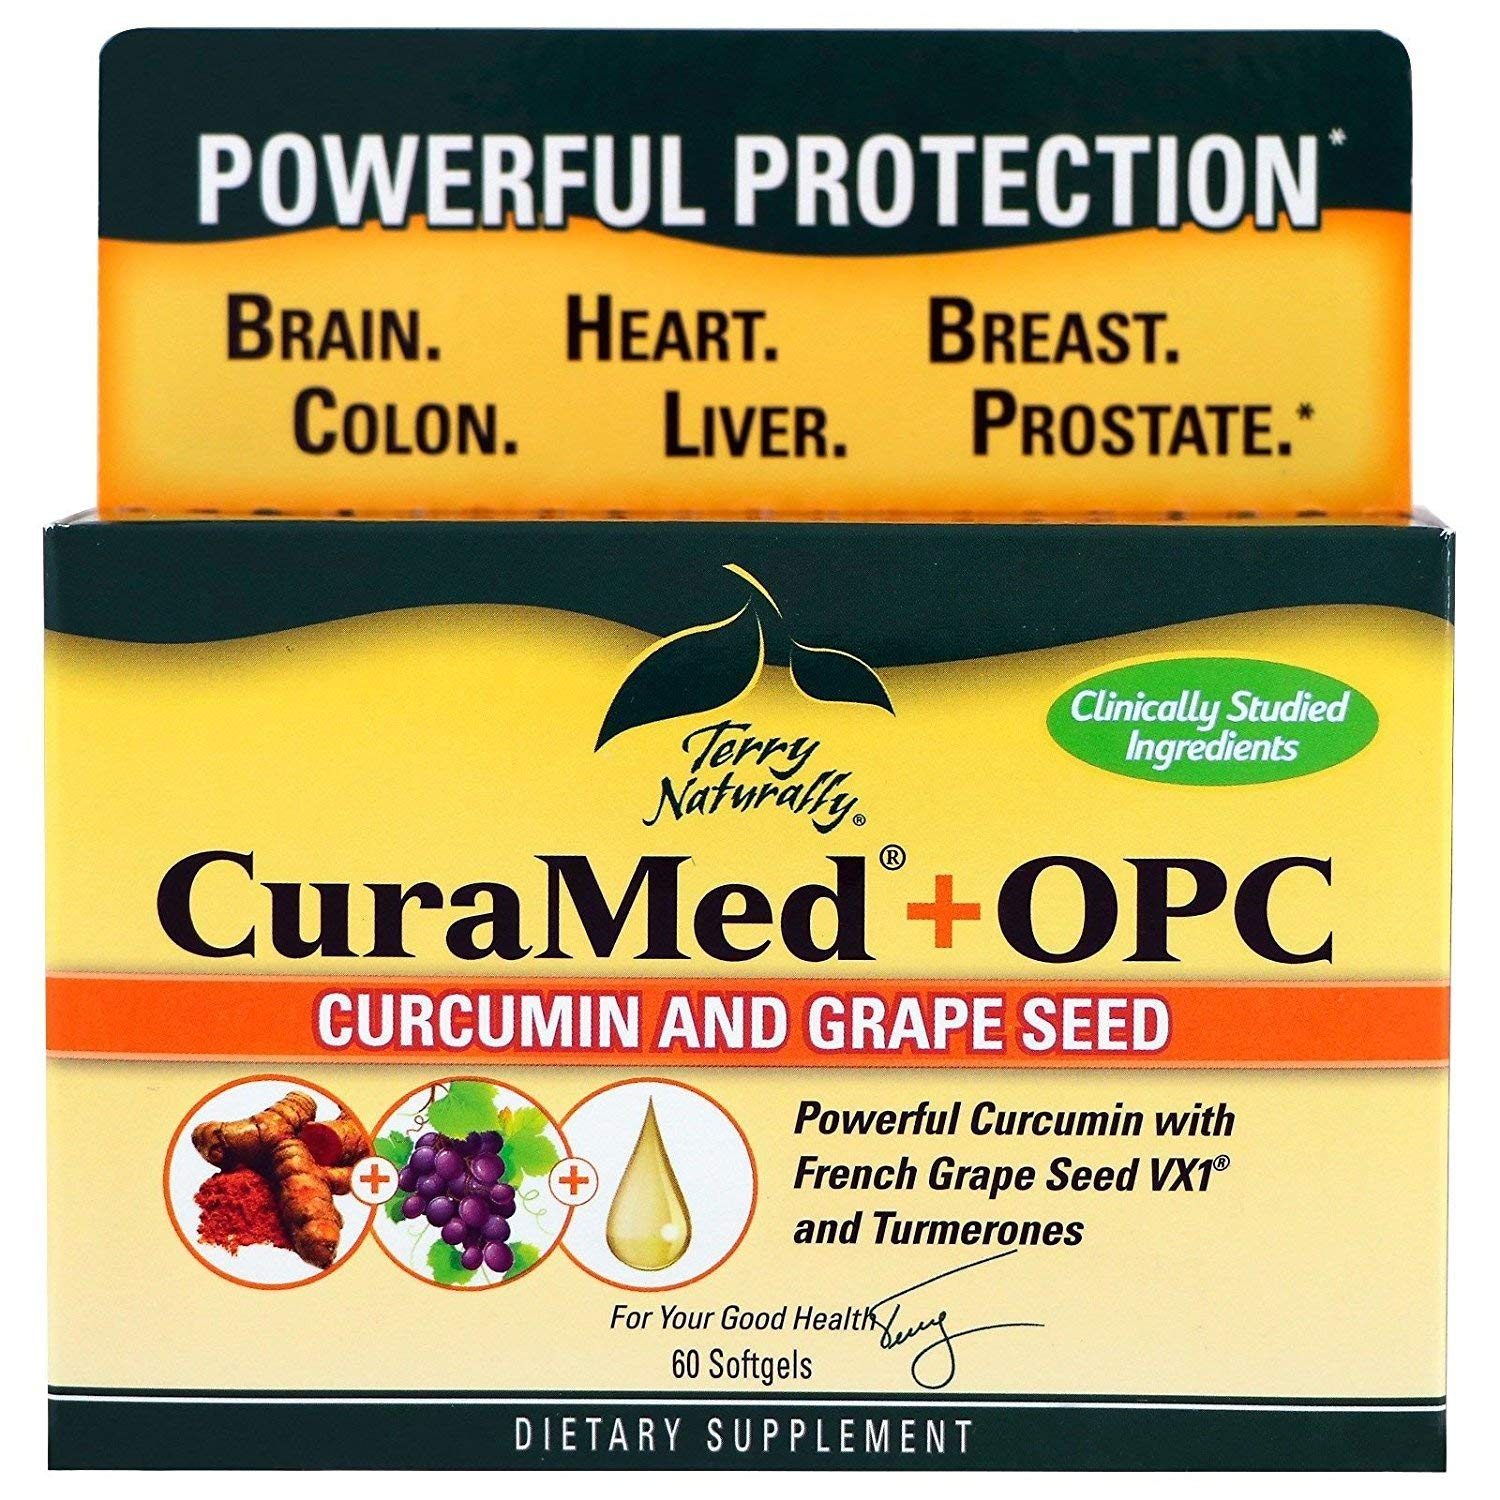 Terry Naturally/Europharma Curamed + OPC(PreviouslyBCM95 + OPC)-60 Softgels -2 Pack